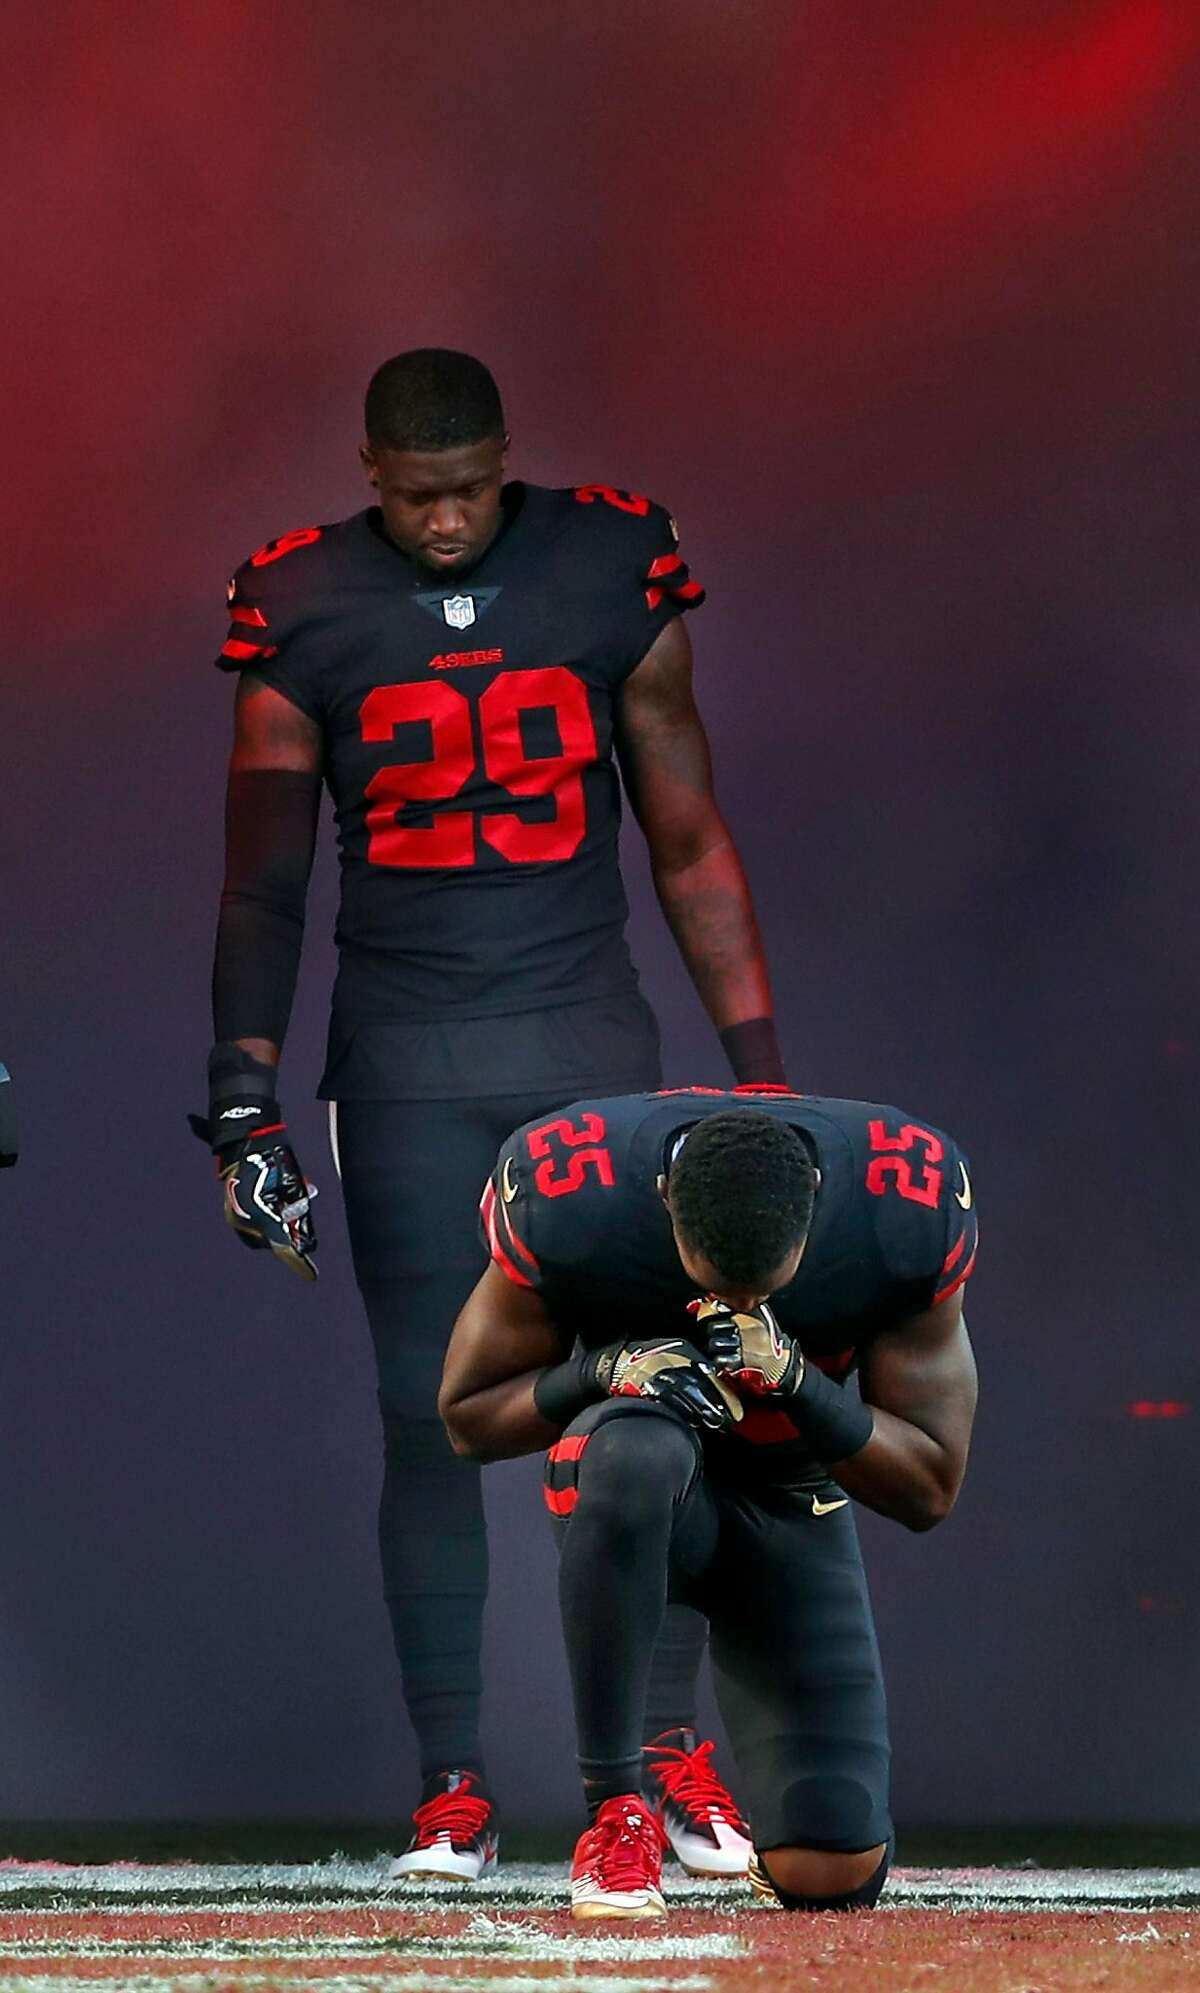 San Francisco 49ers' Jimmie Ward (25) and Jaquiski Tartt (29) are introduced before playing Los Angeles Rams' during NFL game at Levi's Stadium in Santa Clara, Calif., on Thursday, September 21, 2017.